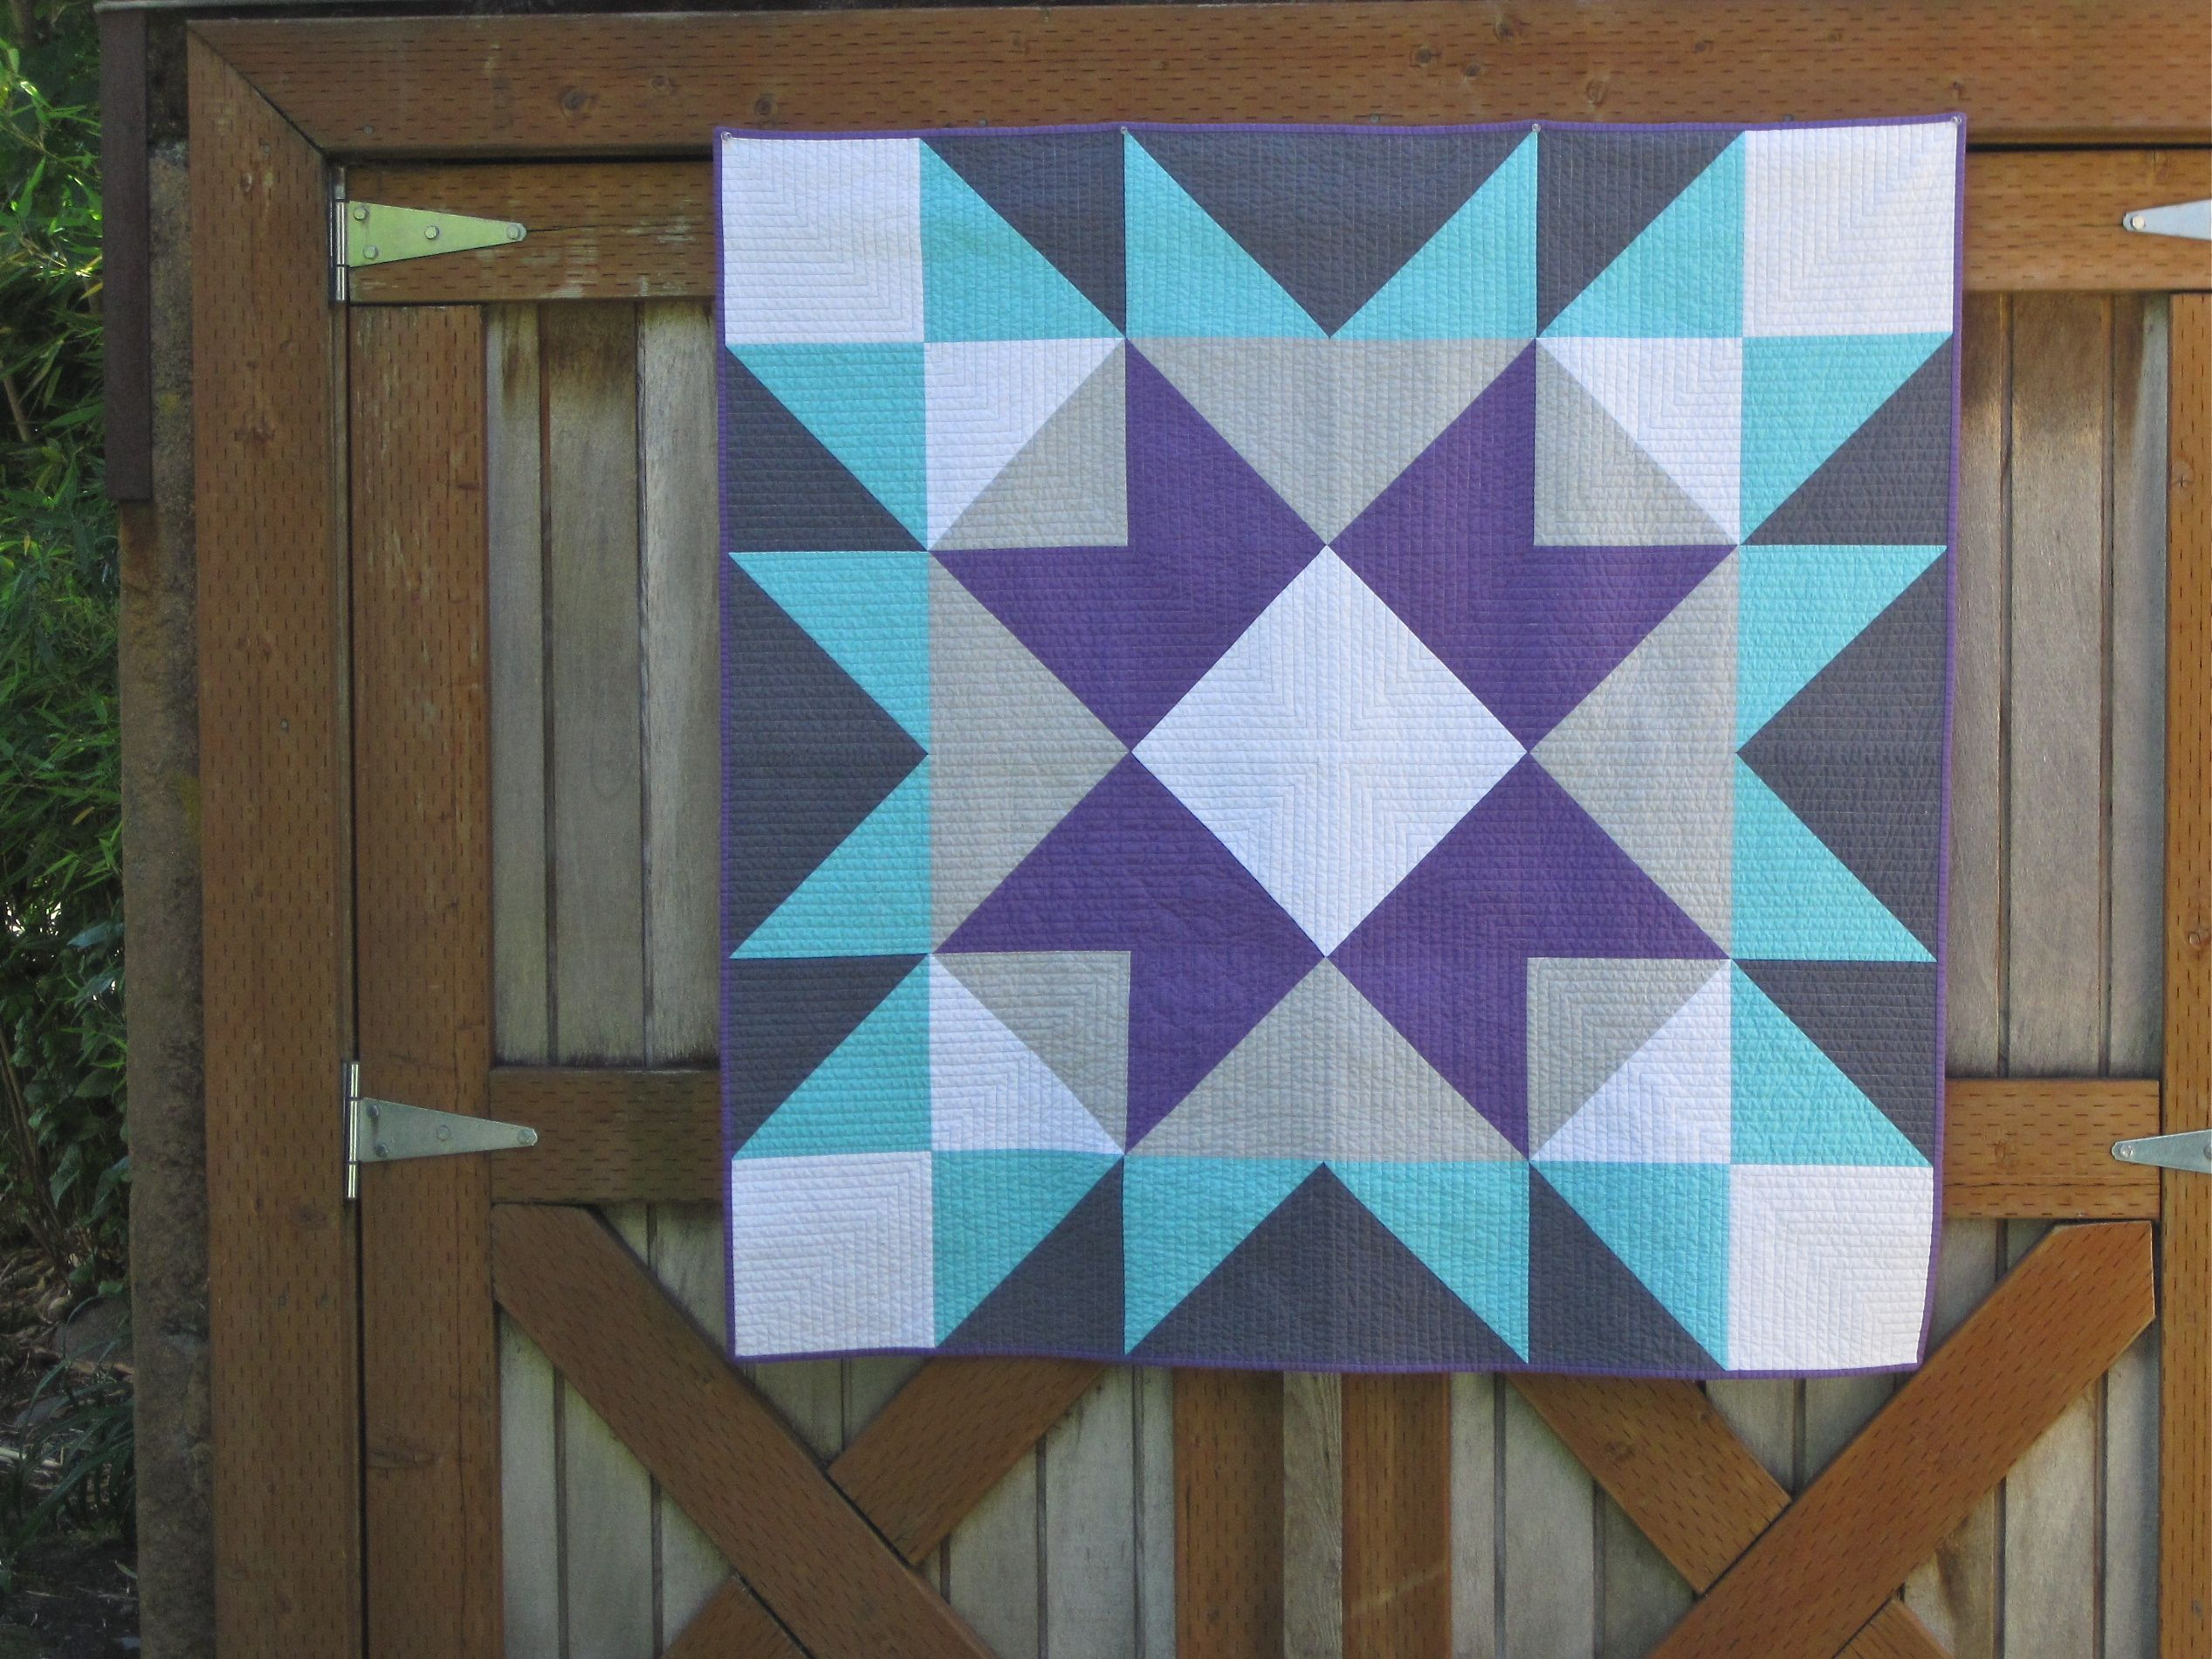 Inspired   Star quilts, Barn and Barn quilts : quilt patterns on barns - Adamdwight.com